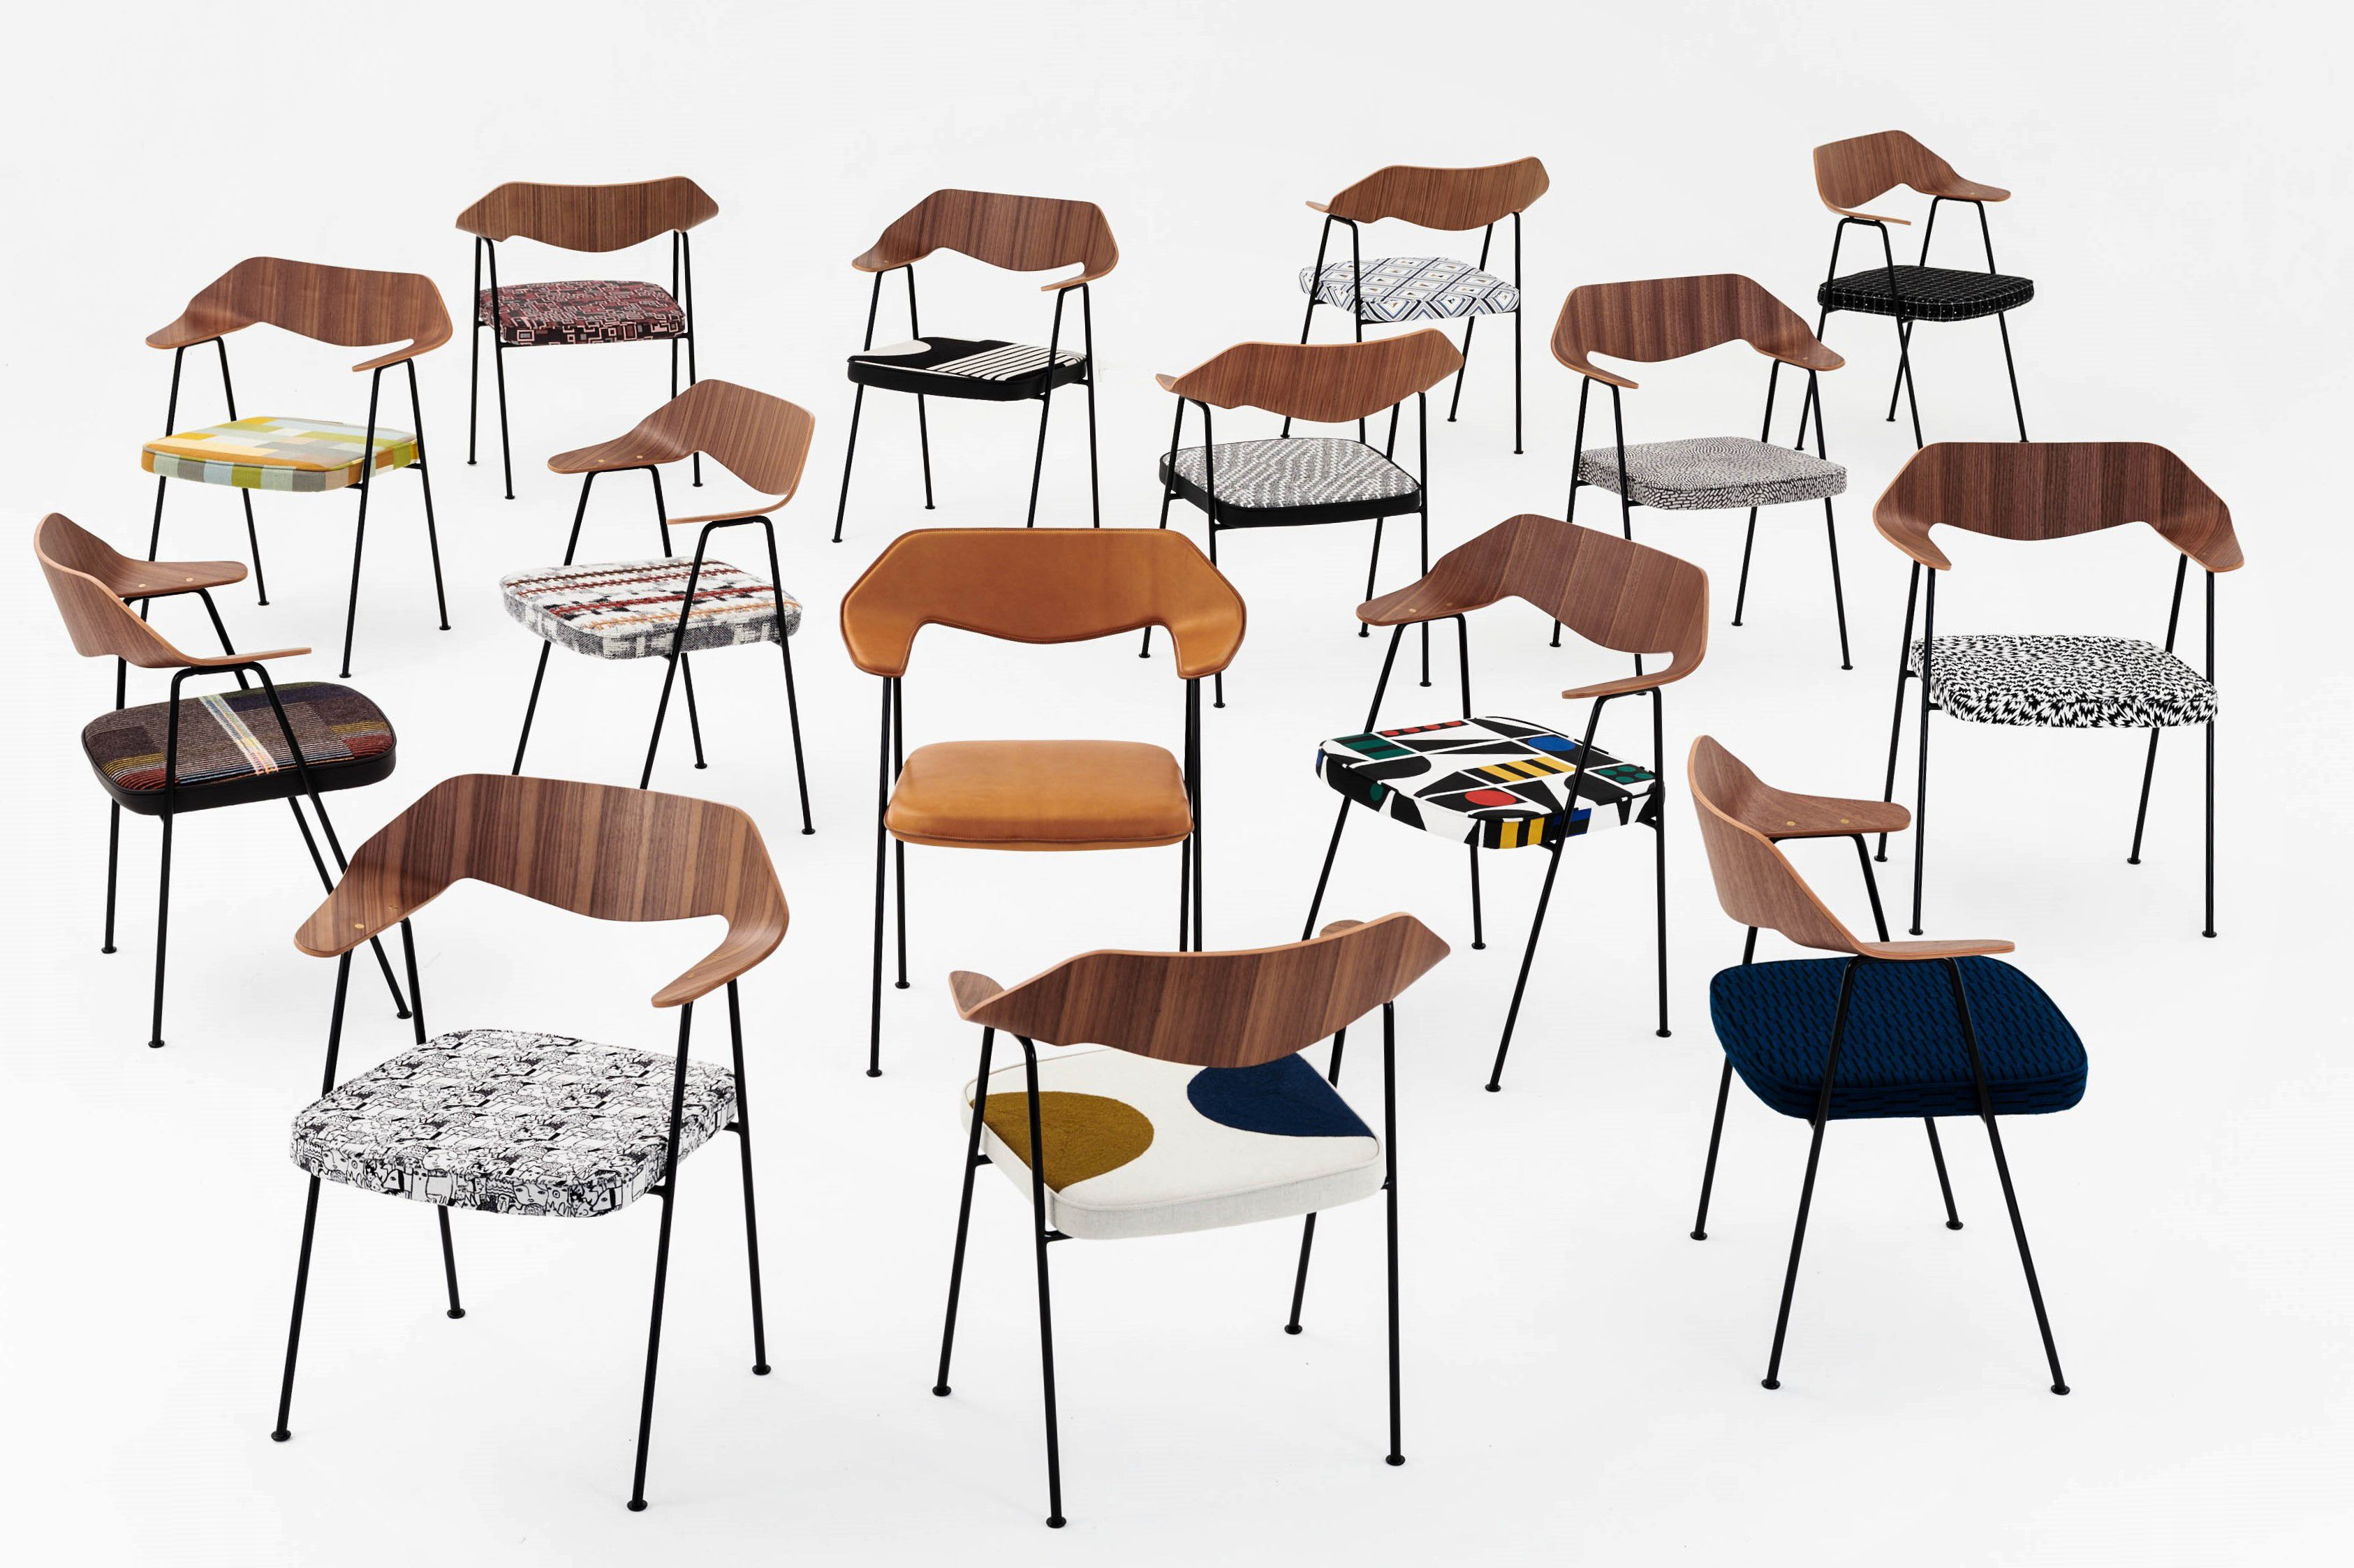 15 designers, 15 new versions of Robin Day's '675' chair, one exciting auction…